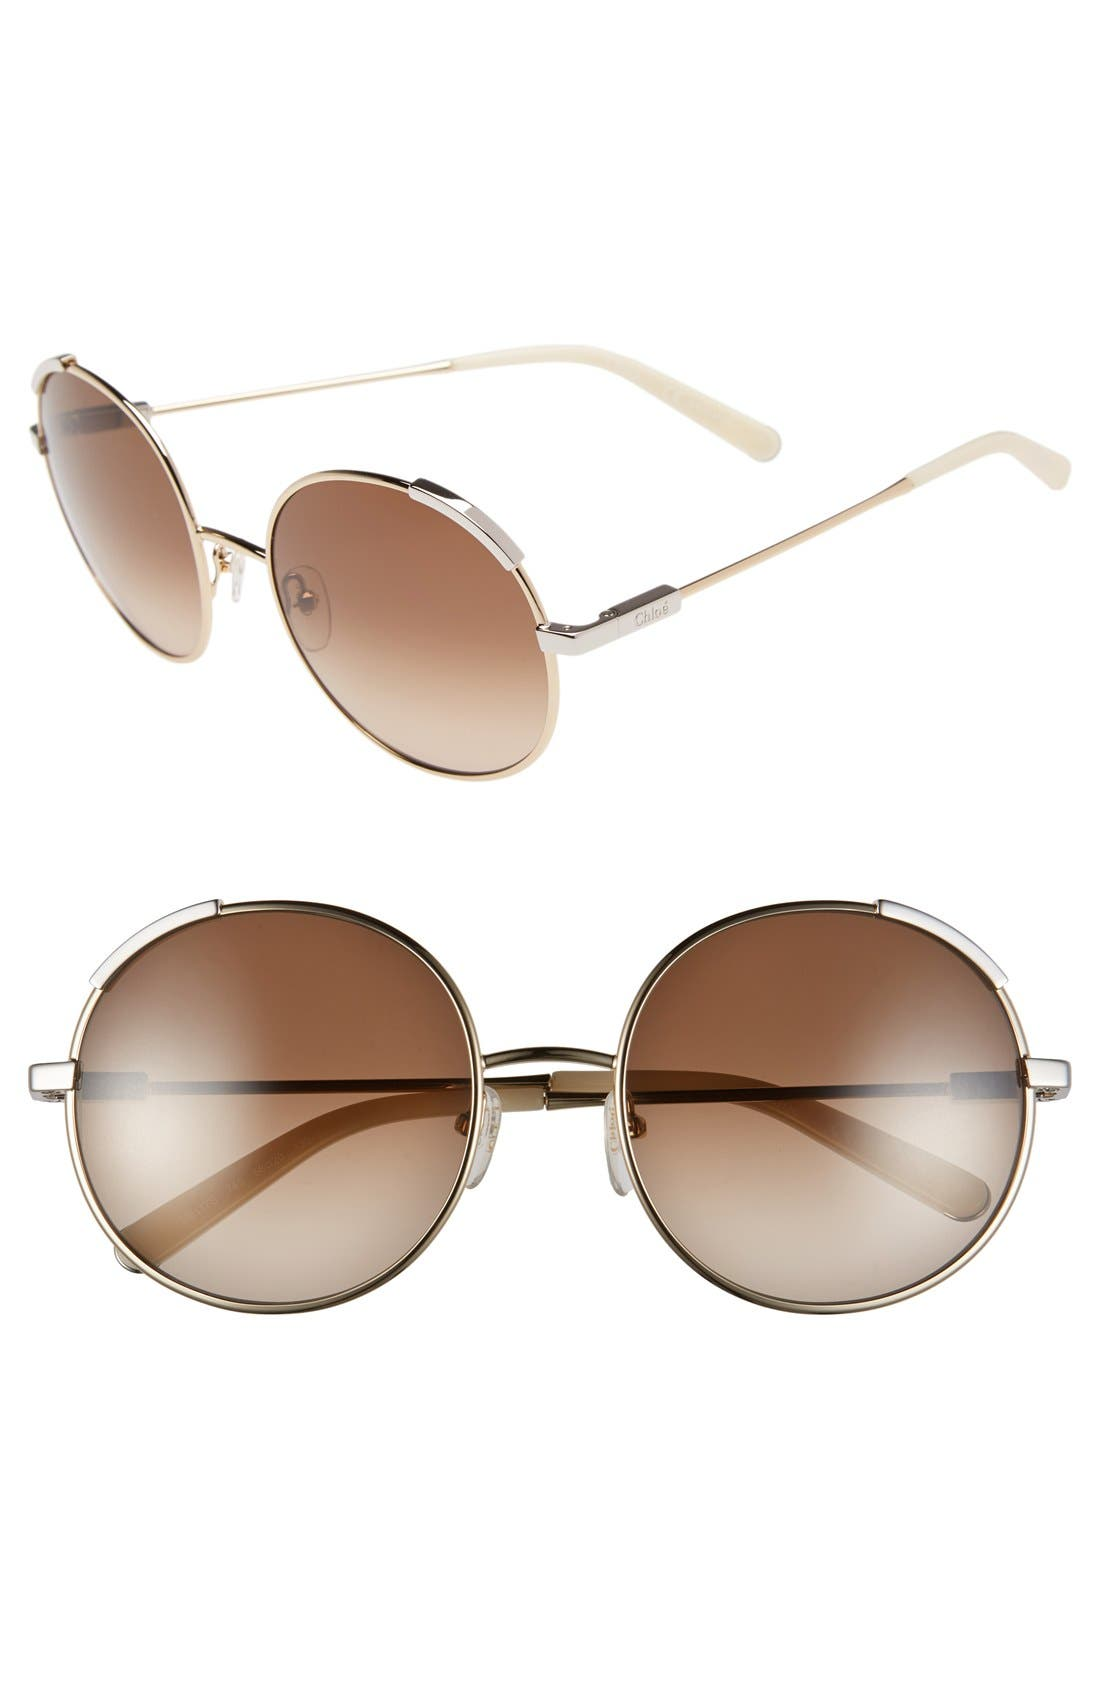 CHLOÉ 'Nerine' 56mm Round Sunglasses